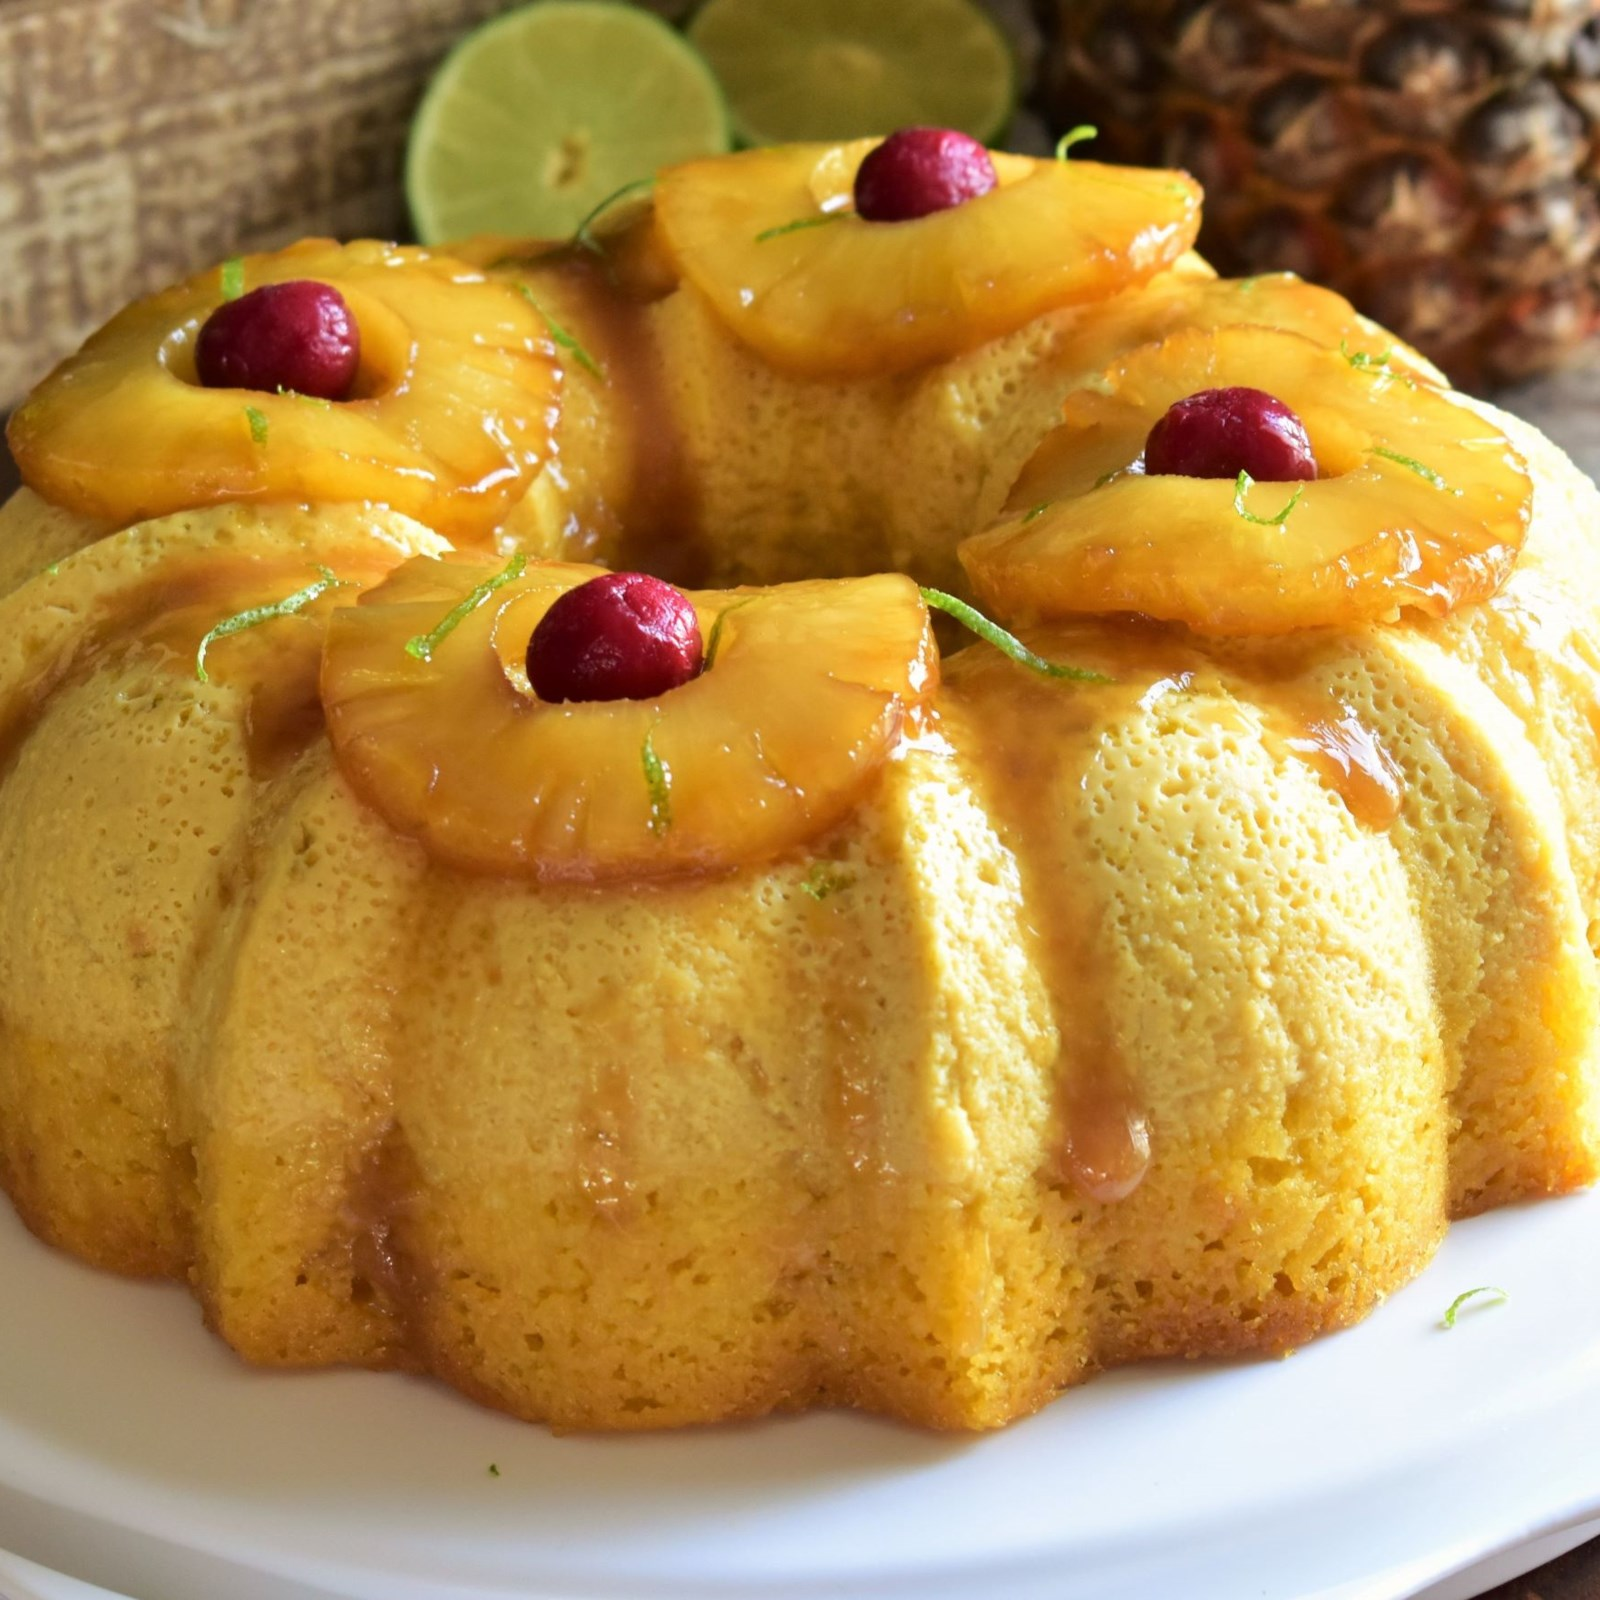 pineapple lime impossible cake baked in a Bundt pan